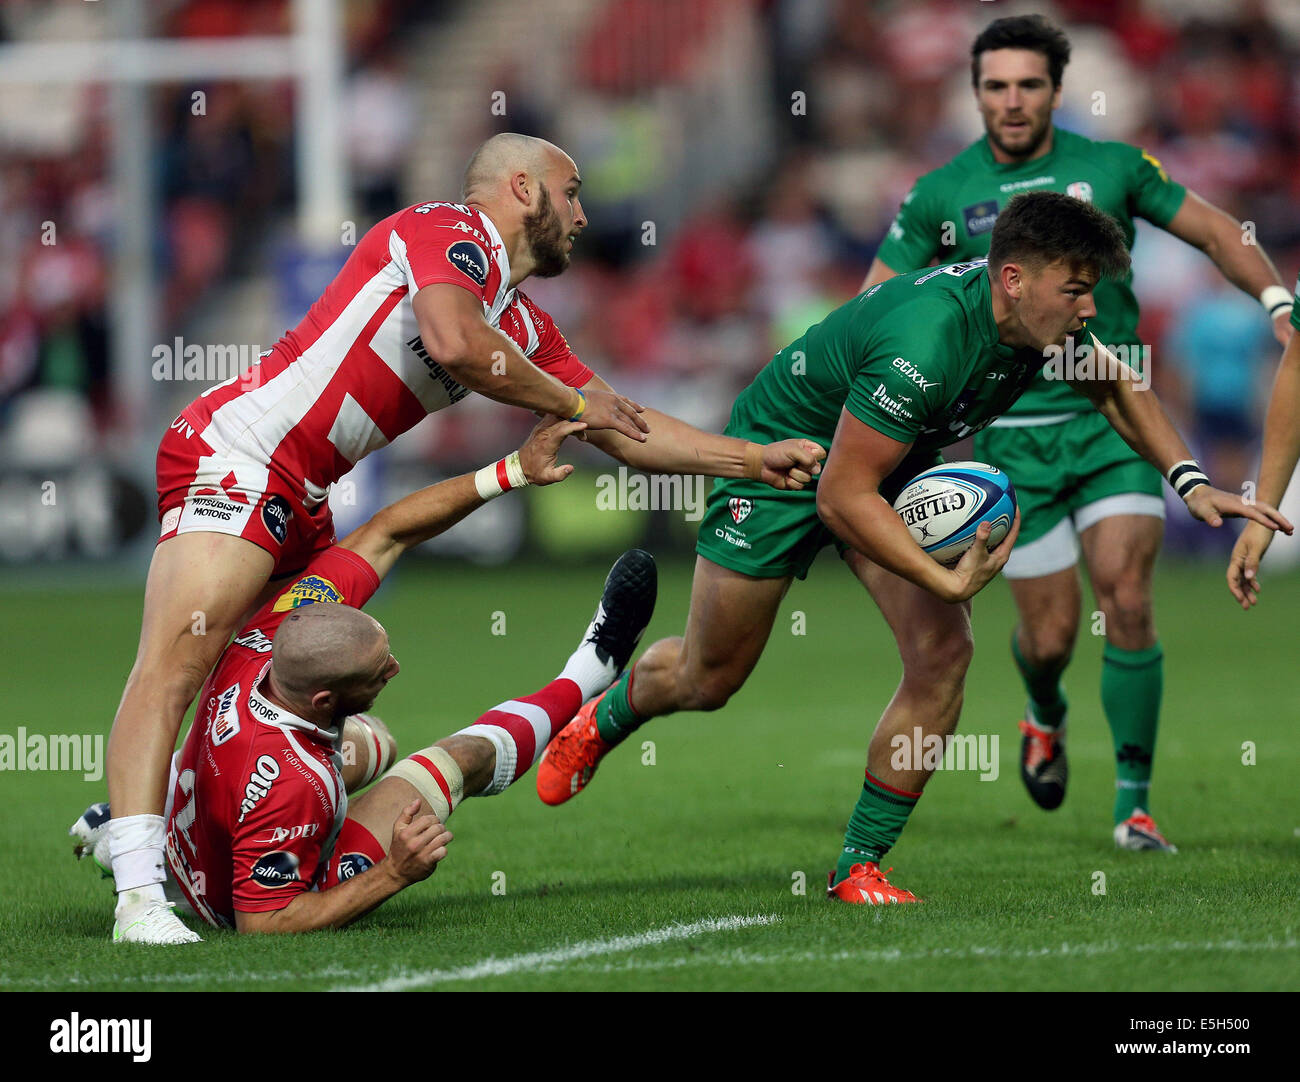 a5307620eccd2 Down And Connor Stock Photos   Down And Connor Stock Images - Alamy